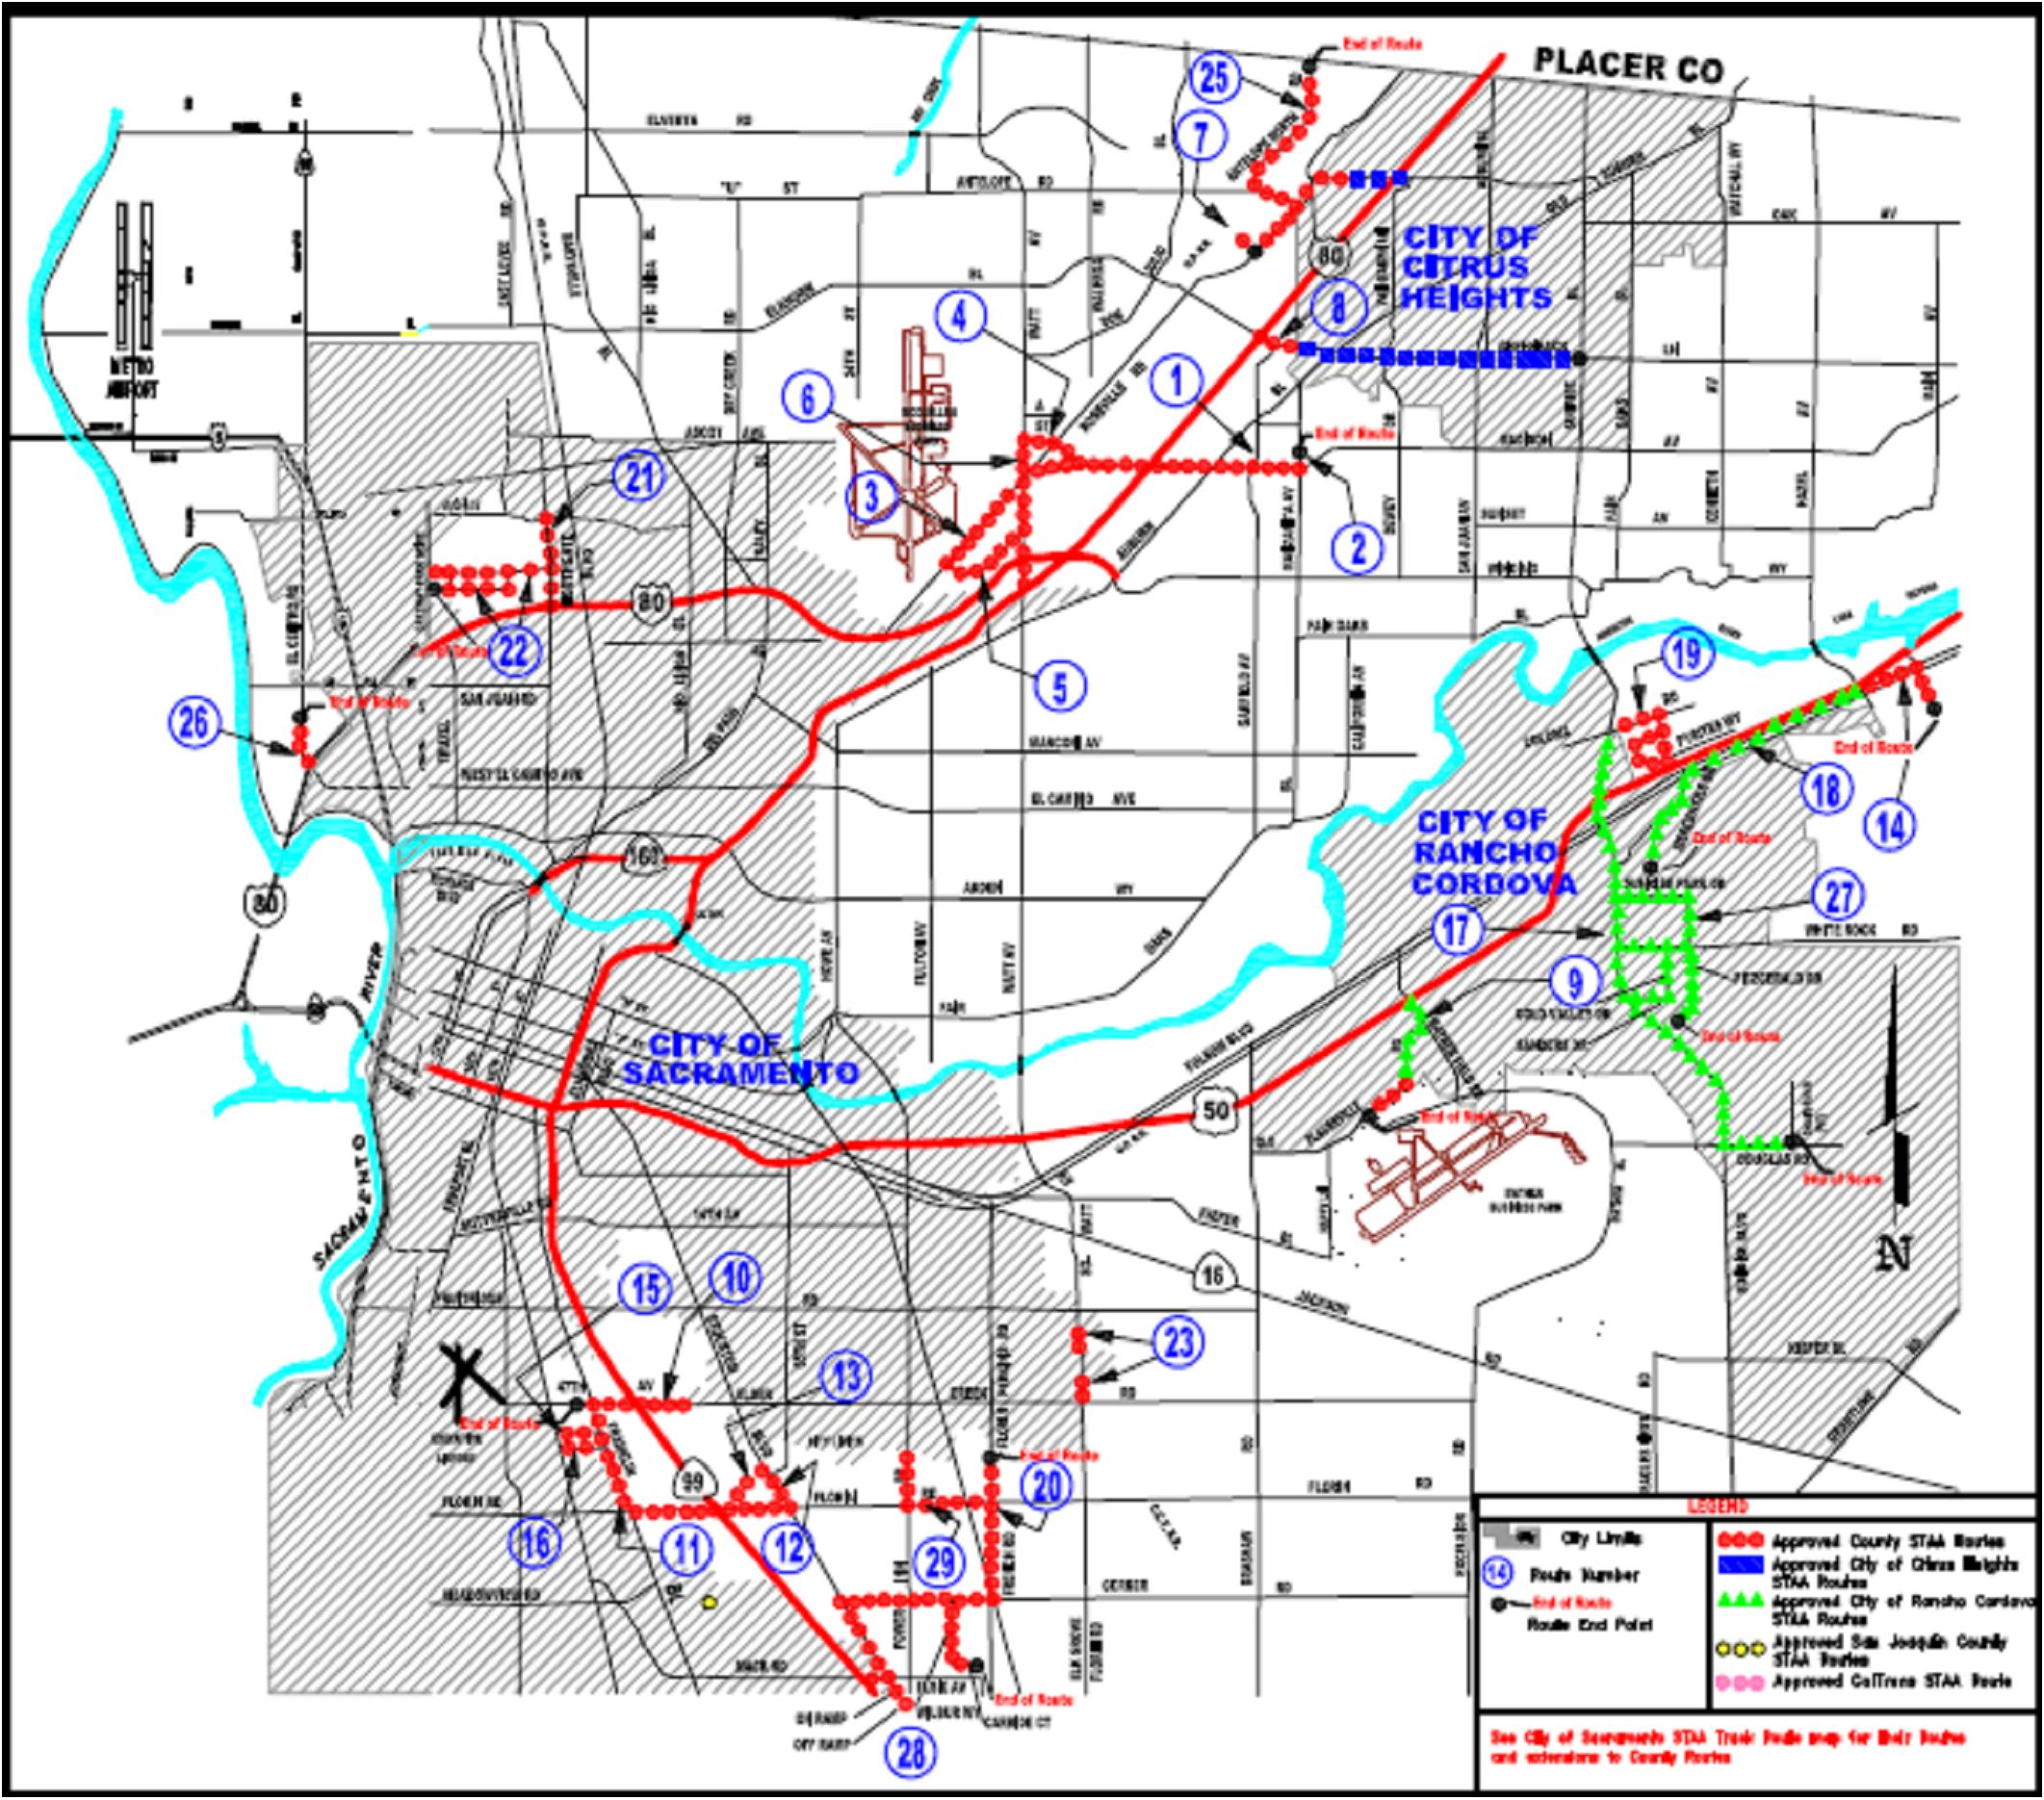 Image of Sacramento Roadways. Click to enlarge image